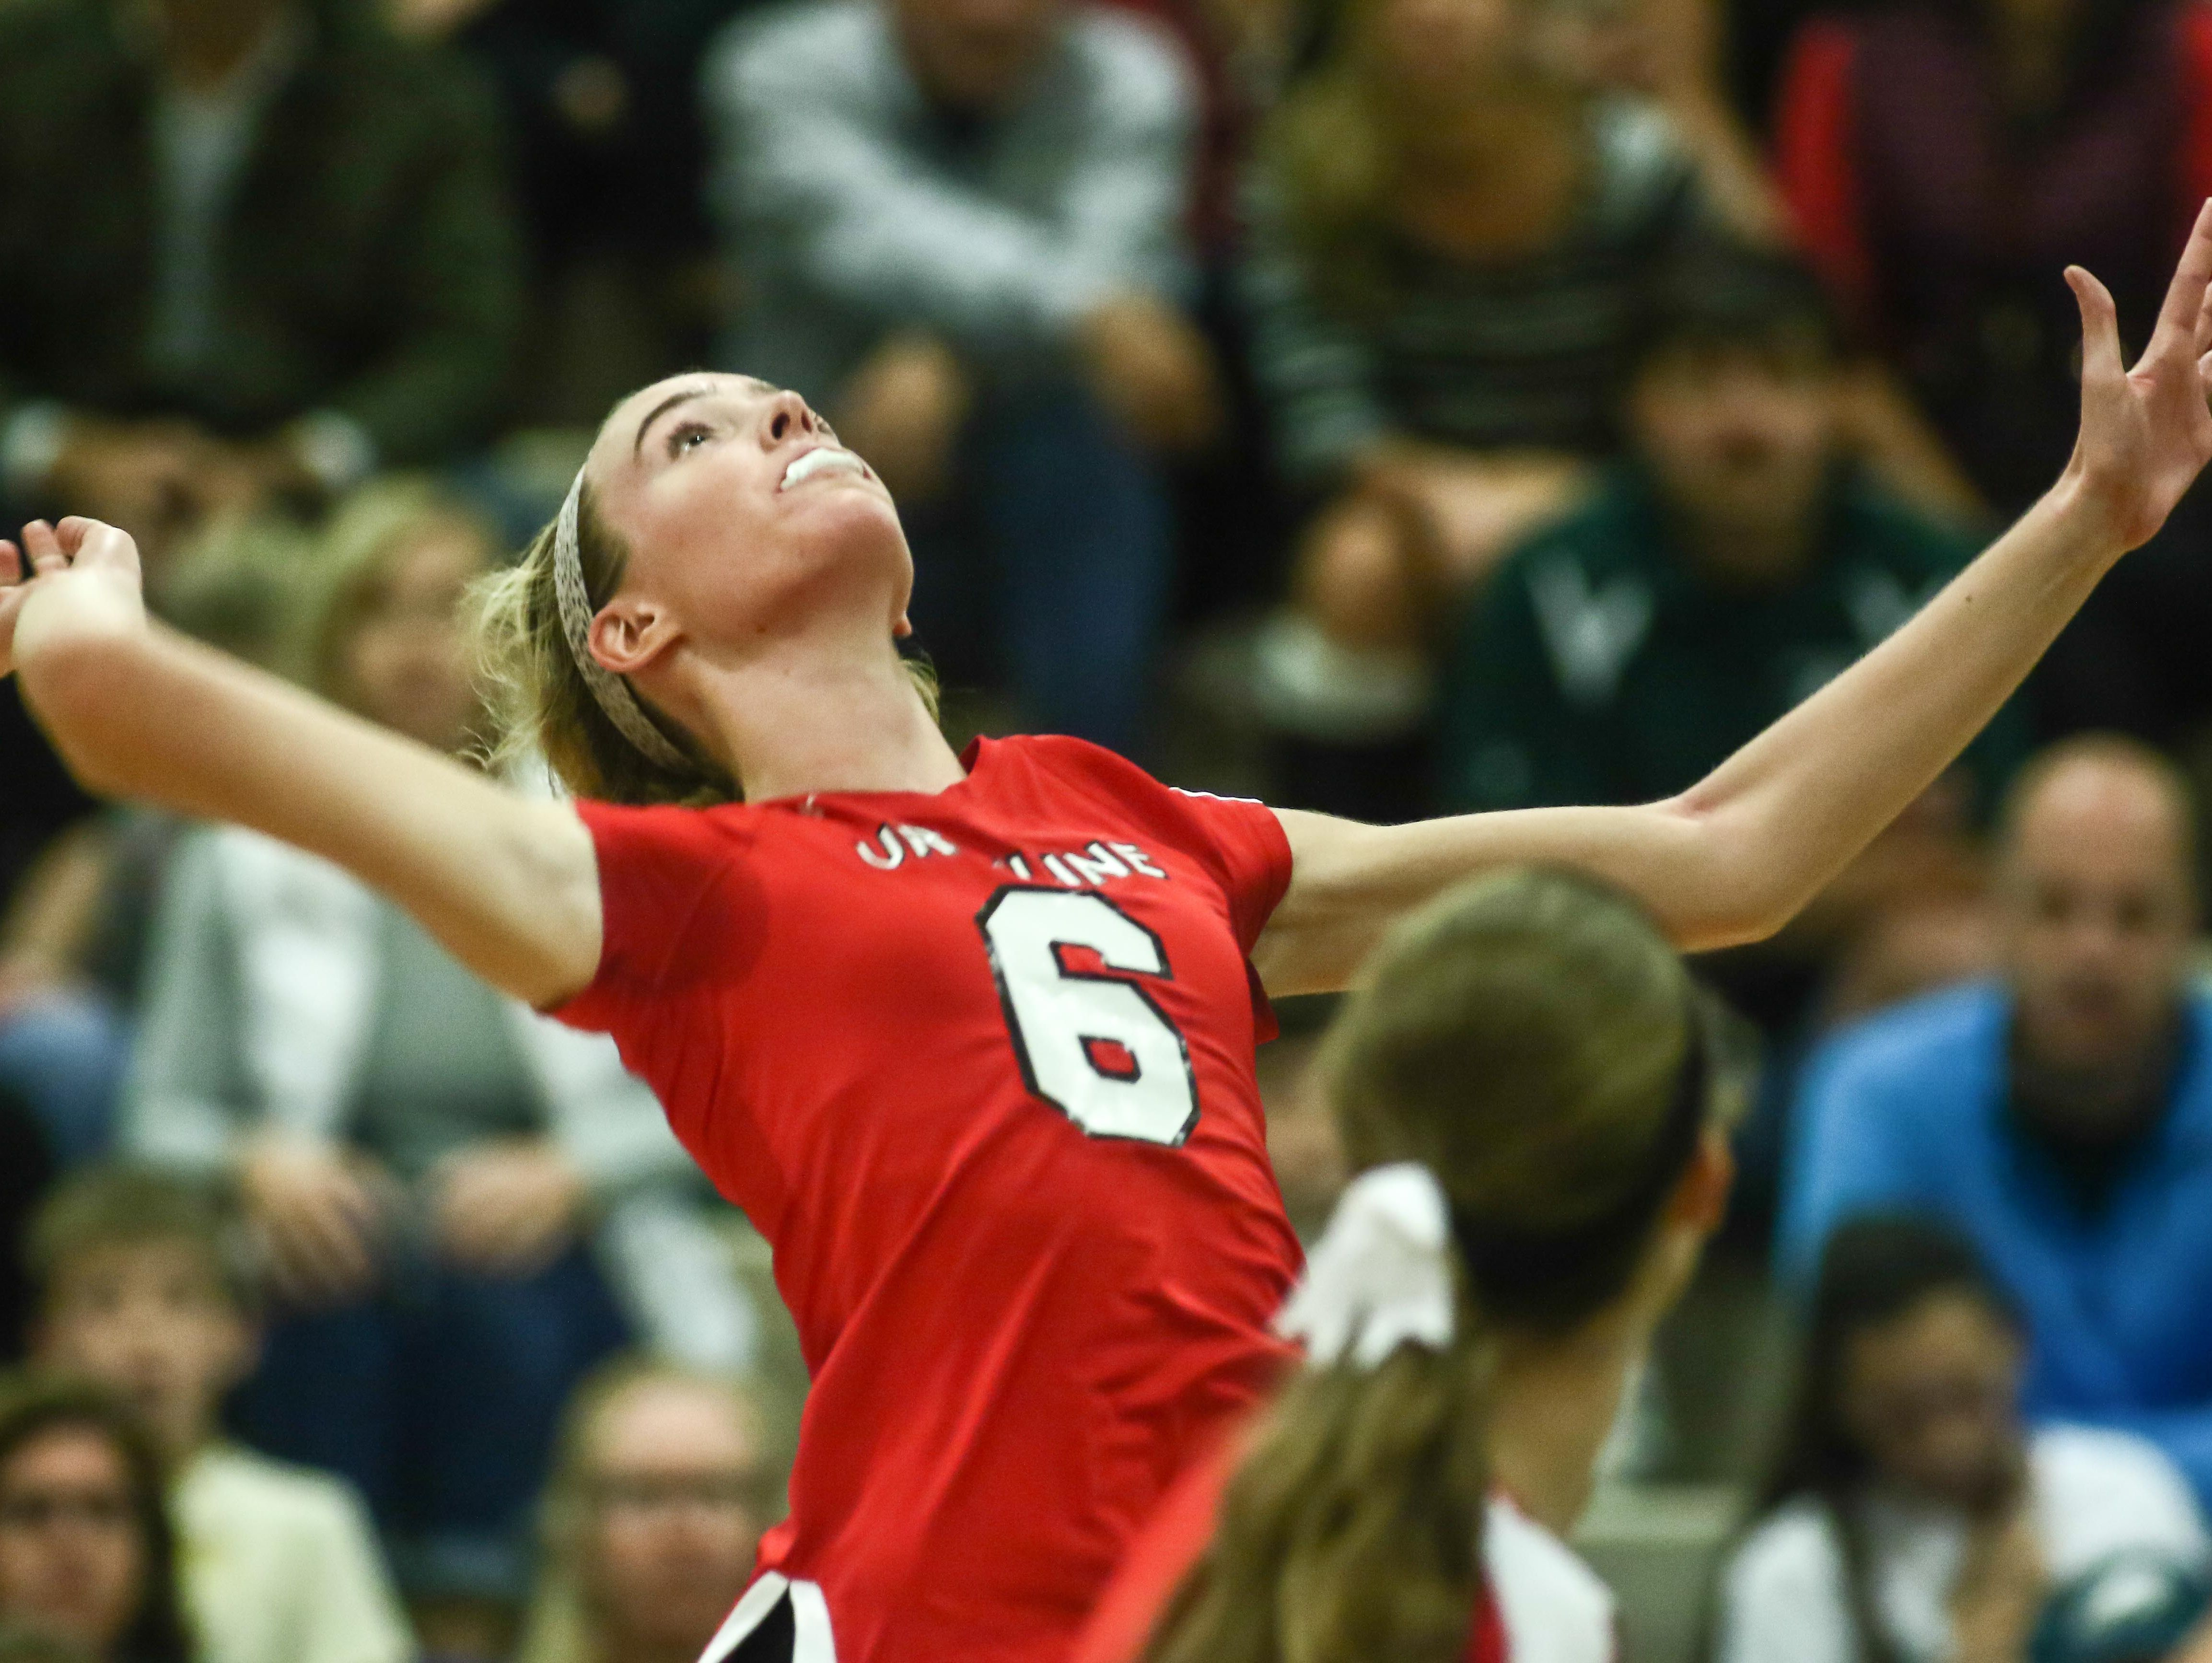 Ursuline's Corinne Furey (6) returns a serve during a DIAA Girls Volleyball quarterfinals match between Padua and Ursuline on Tuesday at St. Mark's High School in Wilmington.